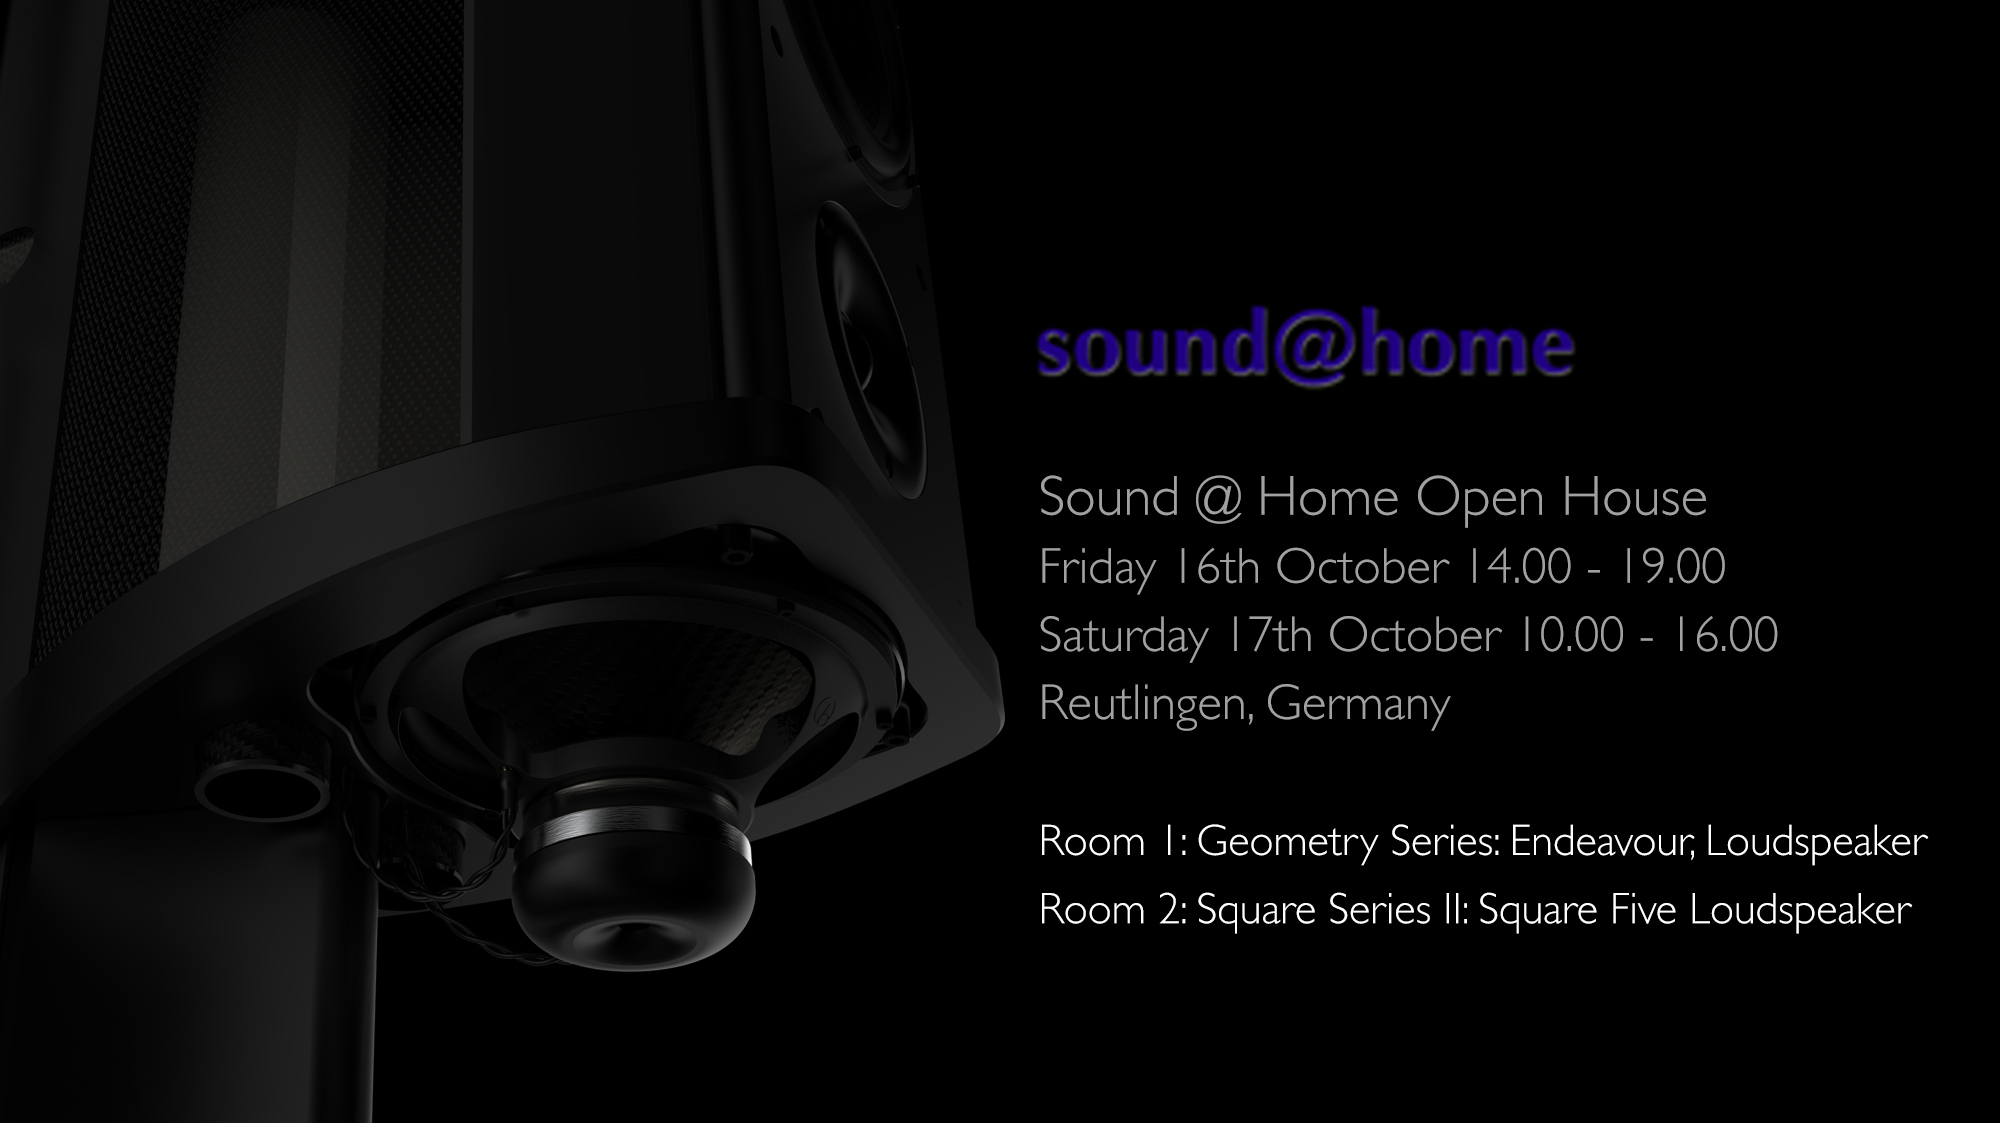 Wilson Benesch - Endeavour - Loudspeaker - Square Five - Sound @ Home - Carbon Fibre - British - High - End - Audio - Geometry Series - Reference Line